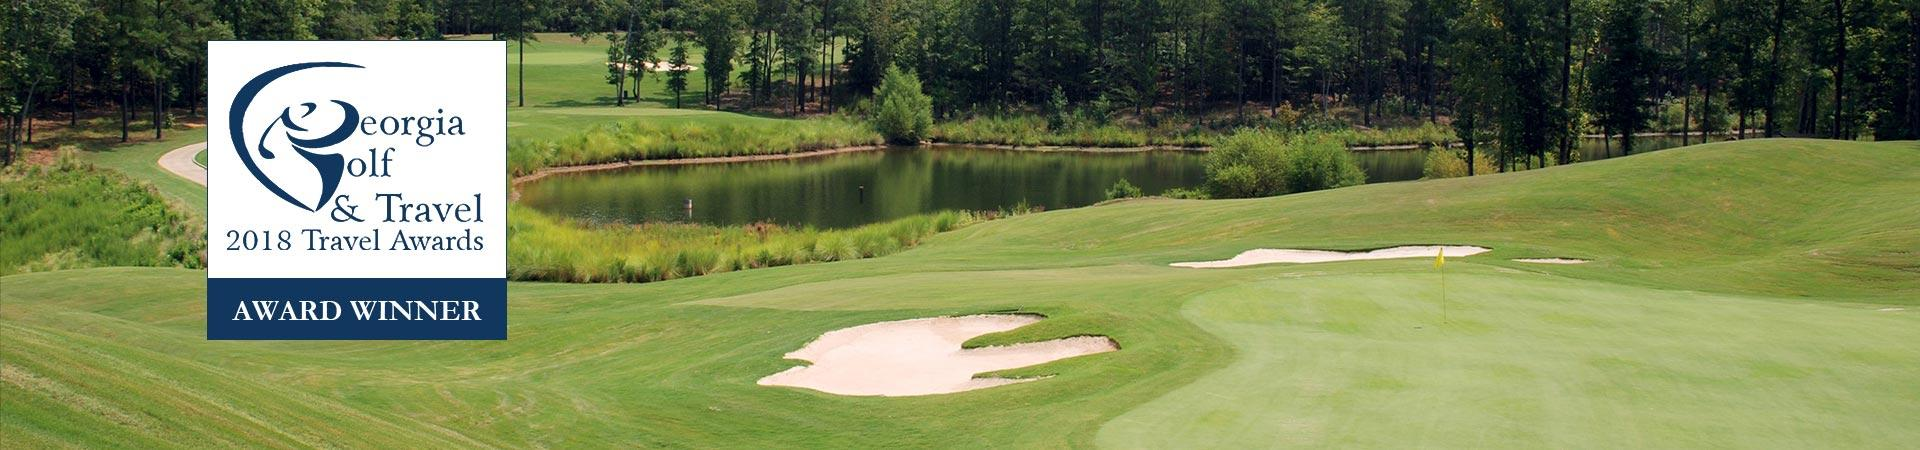 Arrowhead Pointe - Georgia Golf and Tourism Award Winner